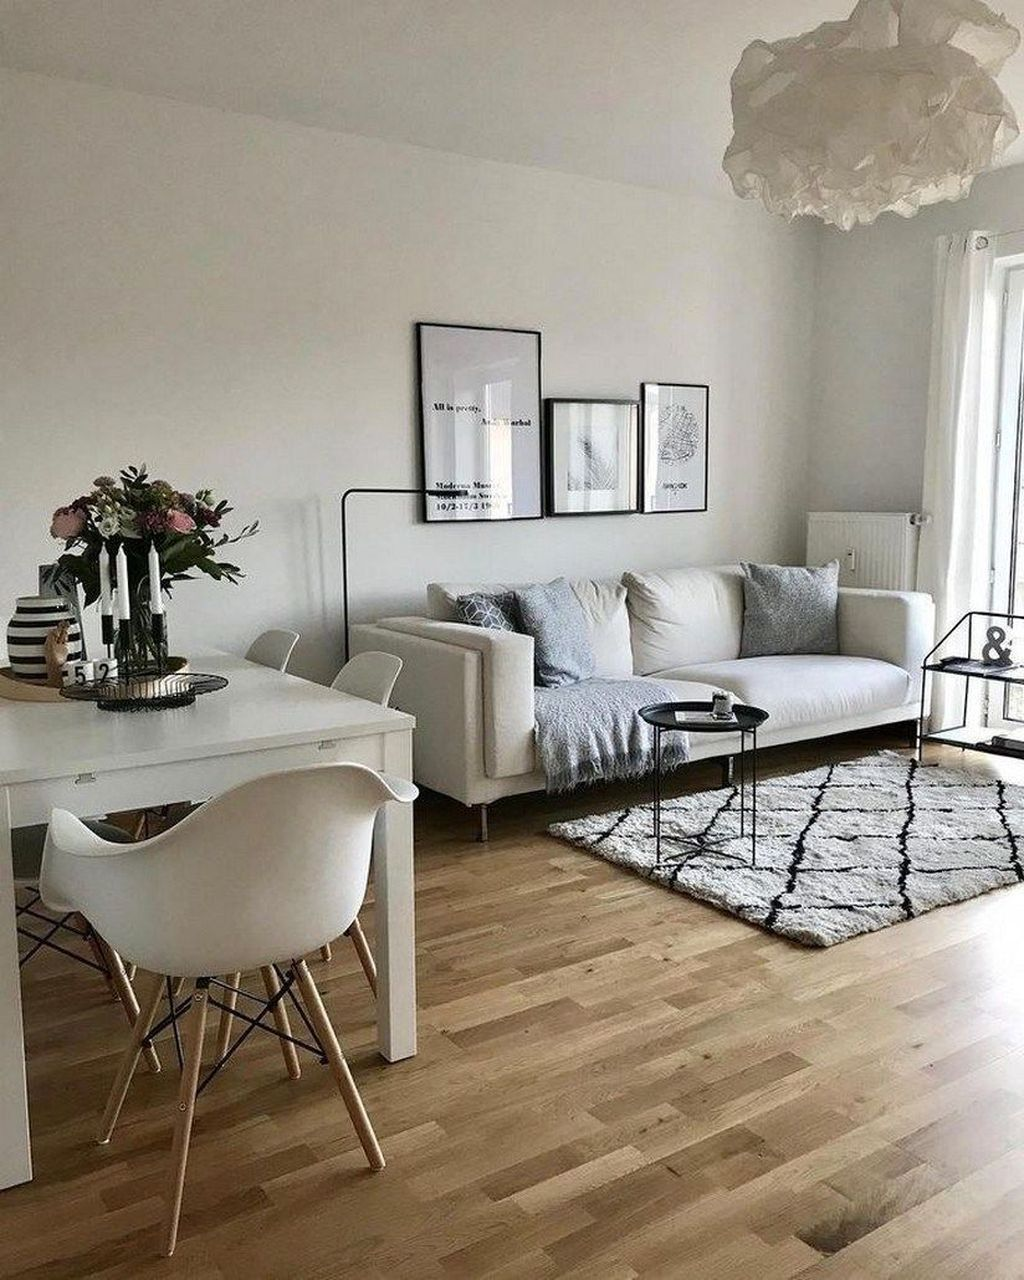 101 Fabulous Small Living Room Design On A Budget Small Apartment Decorating Living Room Small Apartment Living Room Living Room Decor Apartment #small #living #room #decor #ideas #on #a #budget